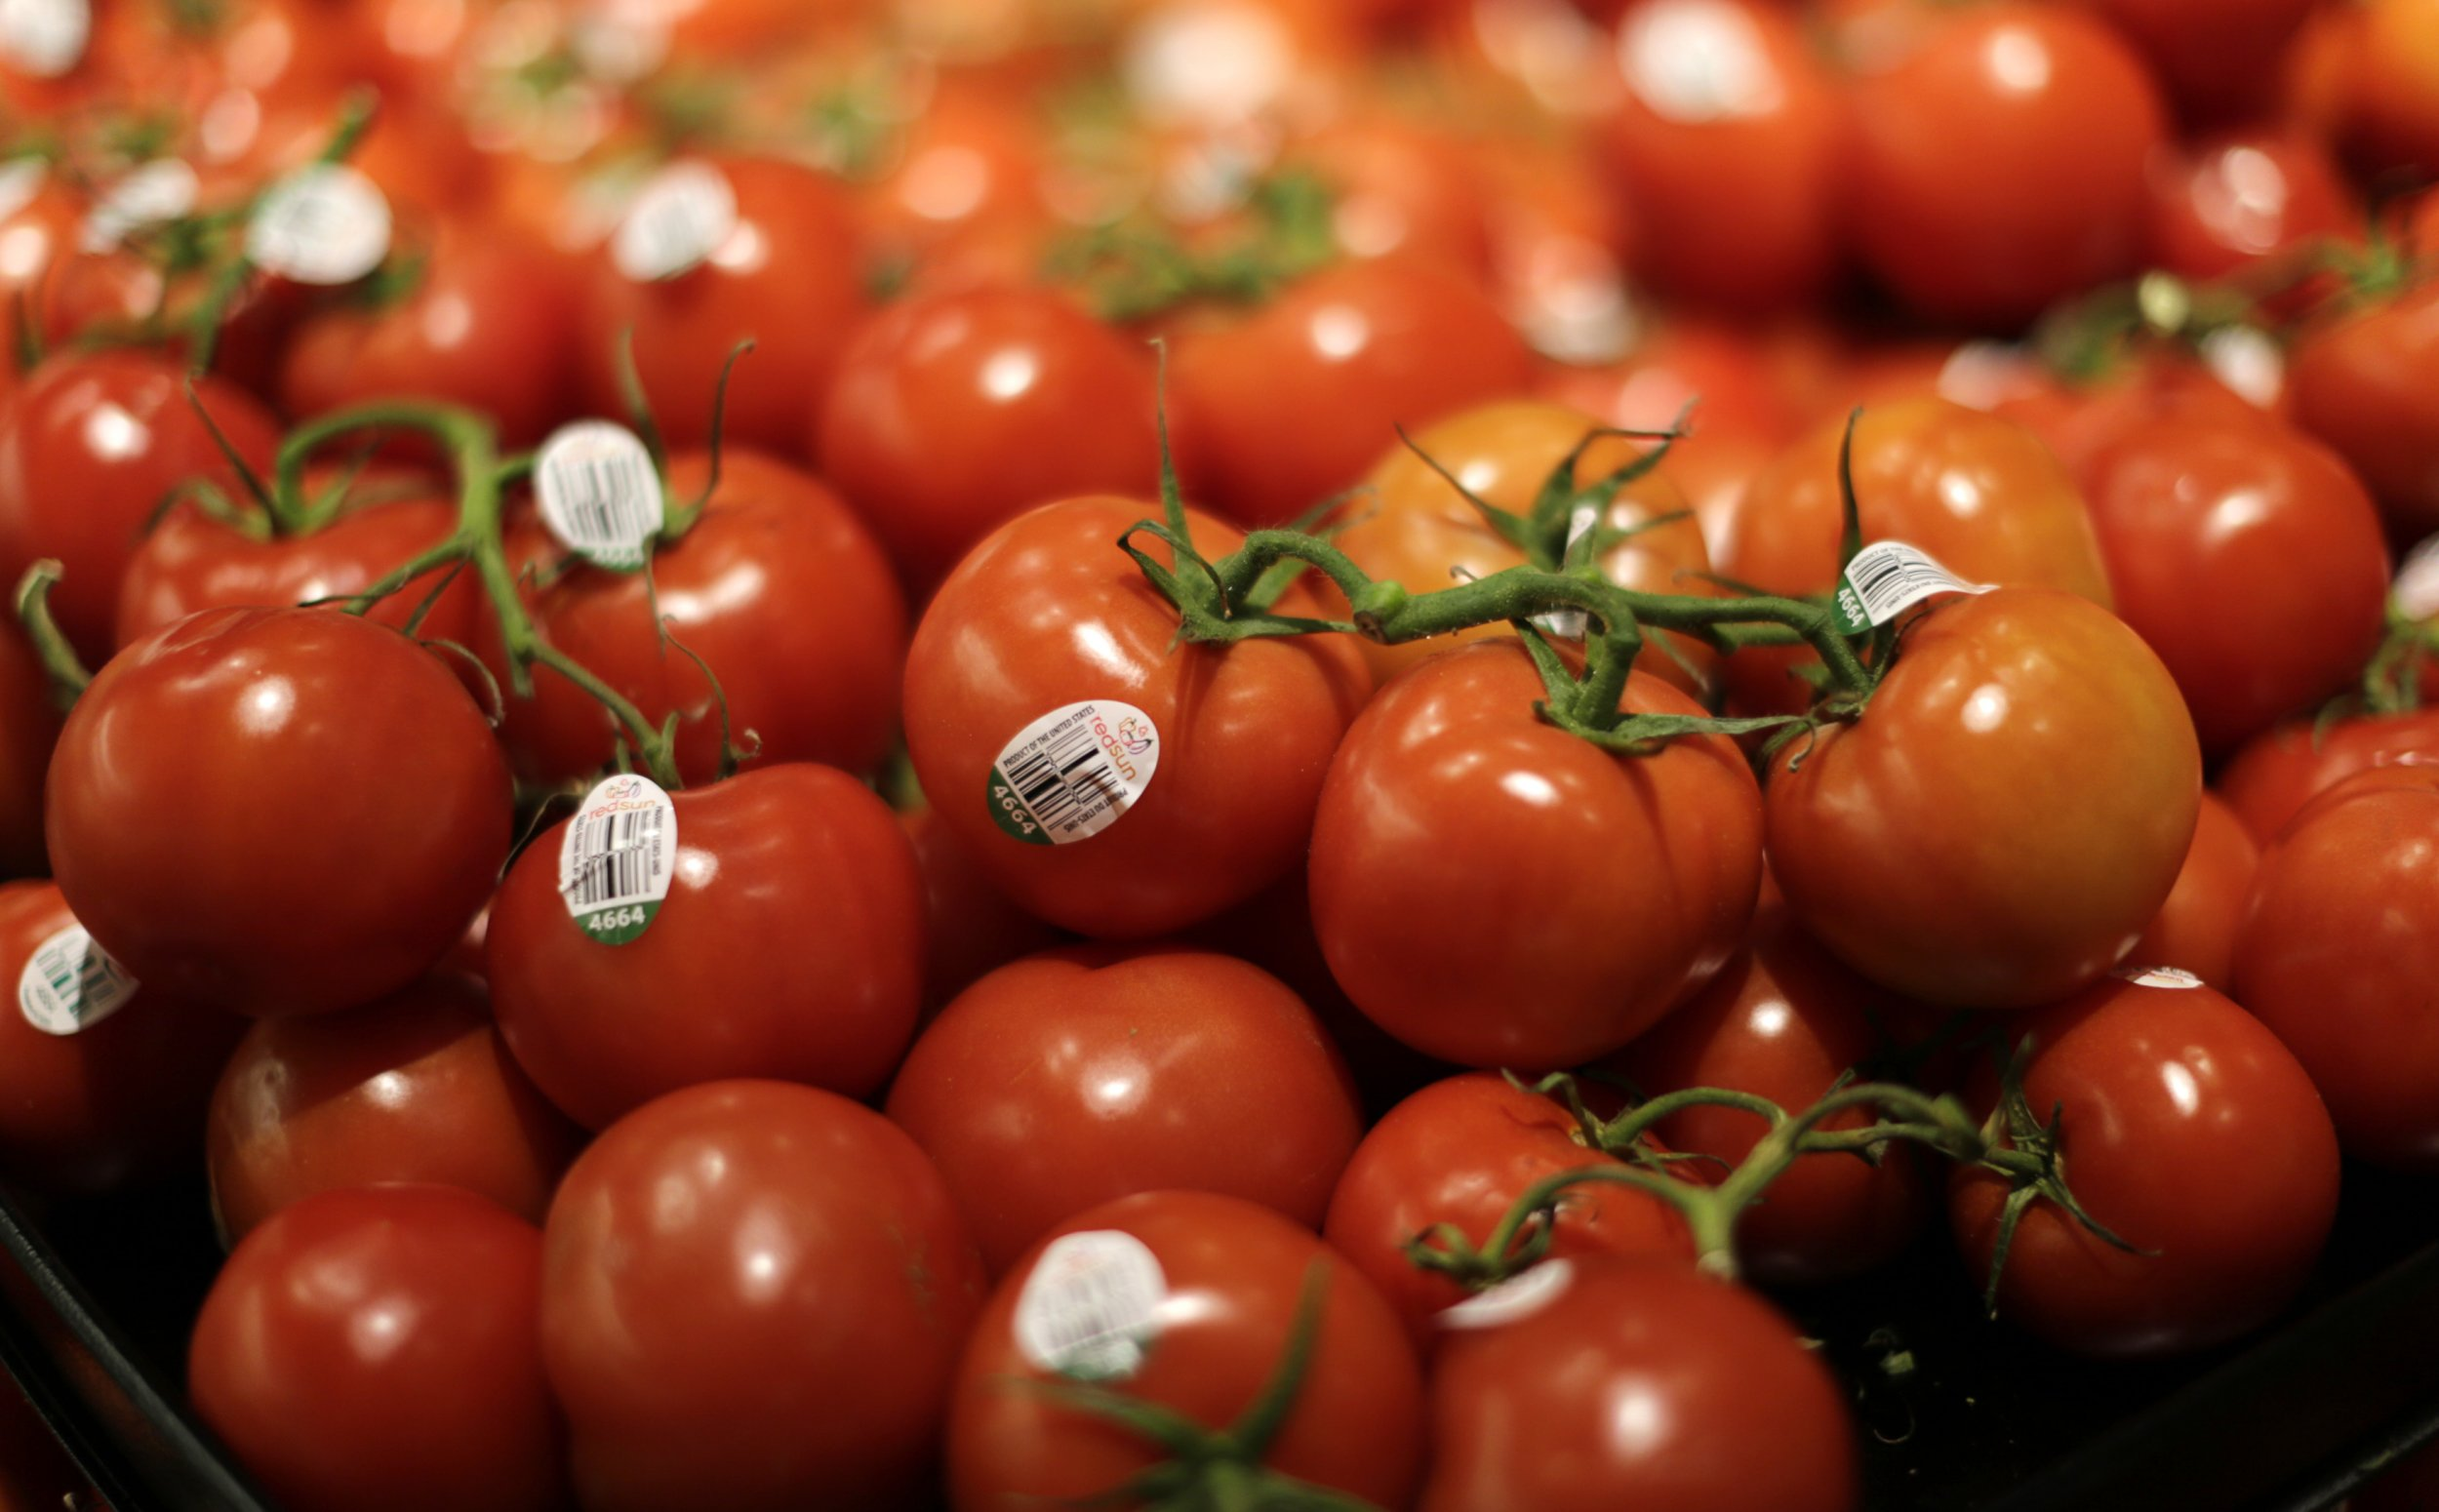 pti govt allows tomatoes import from iran to arrest price hike